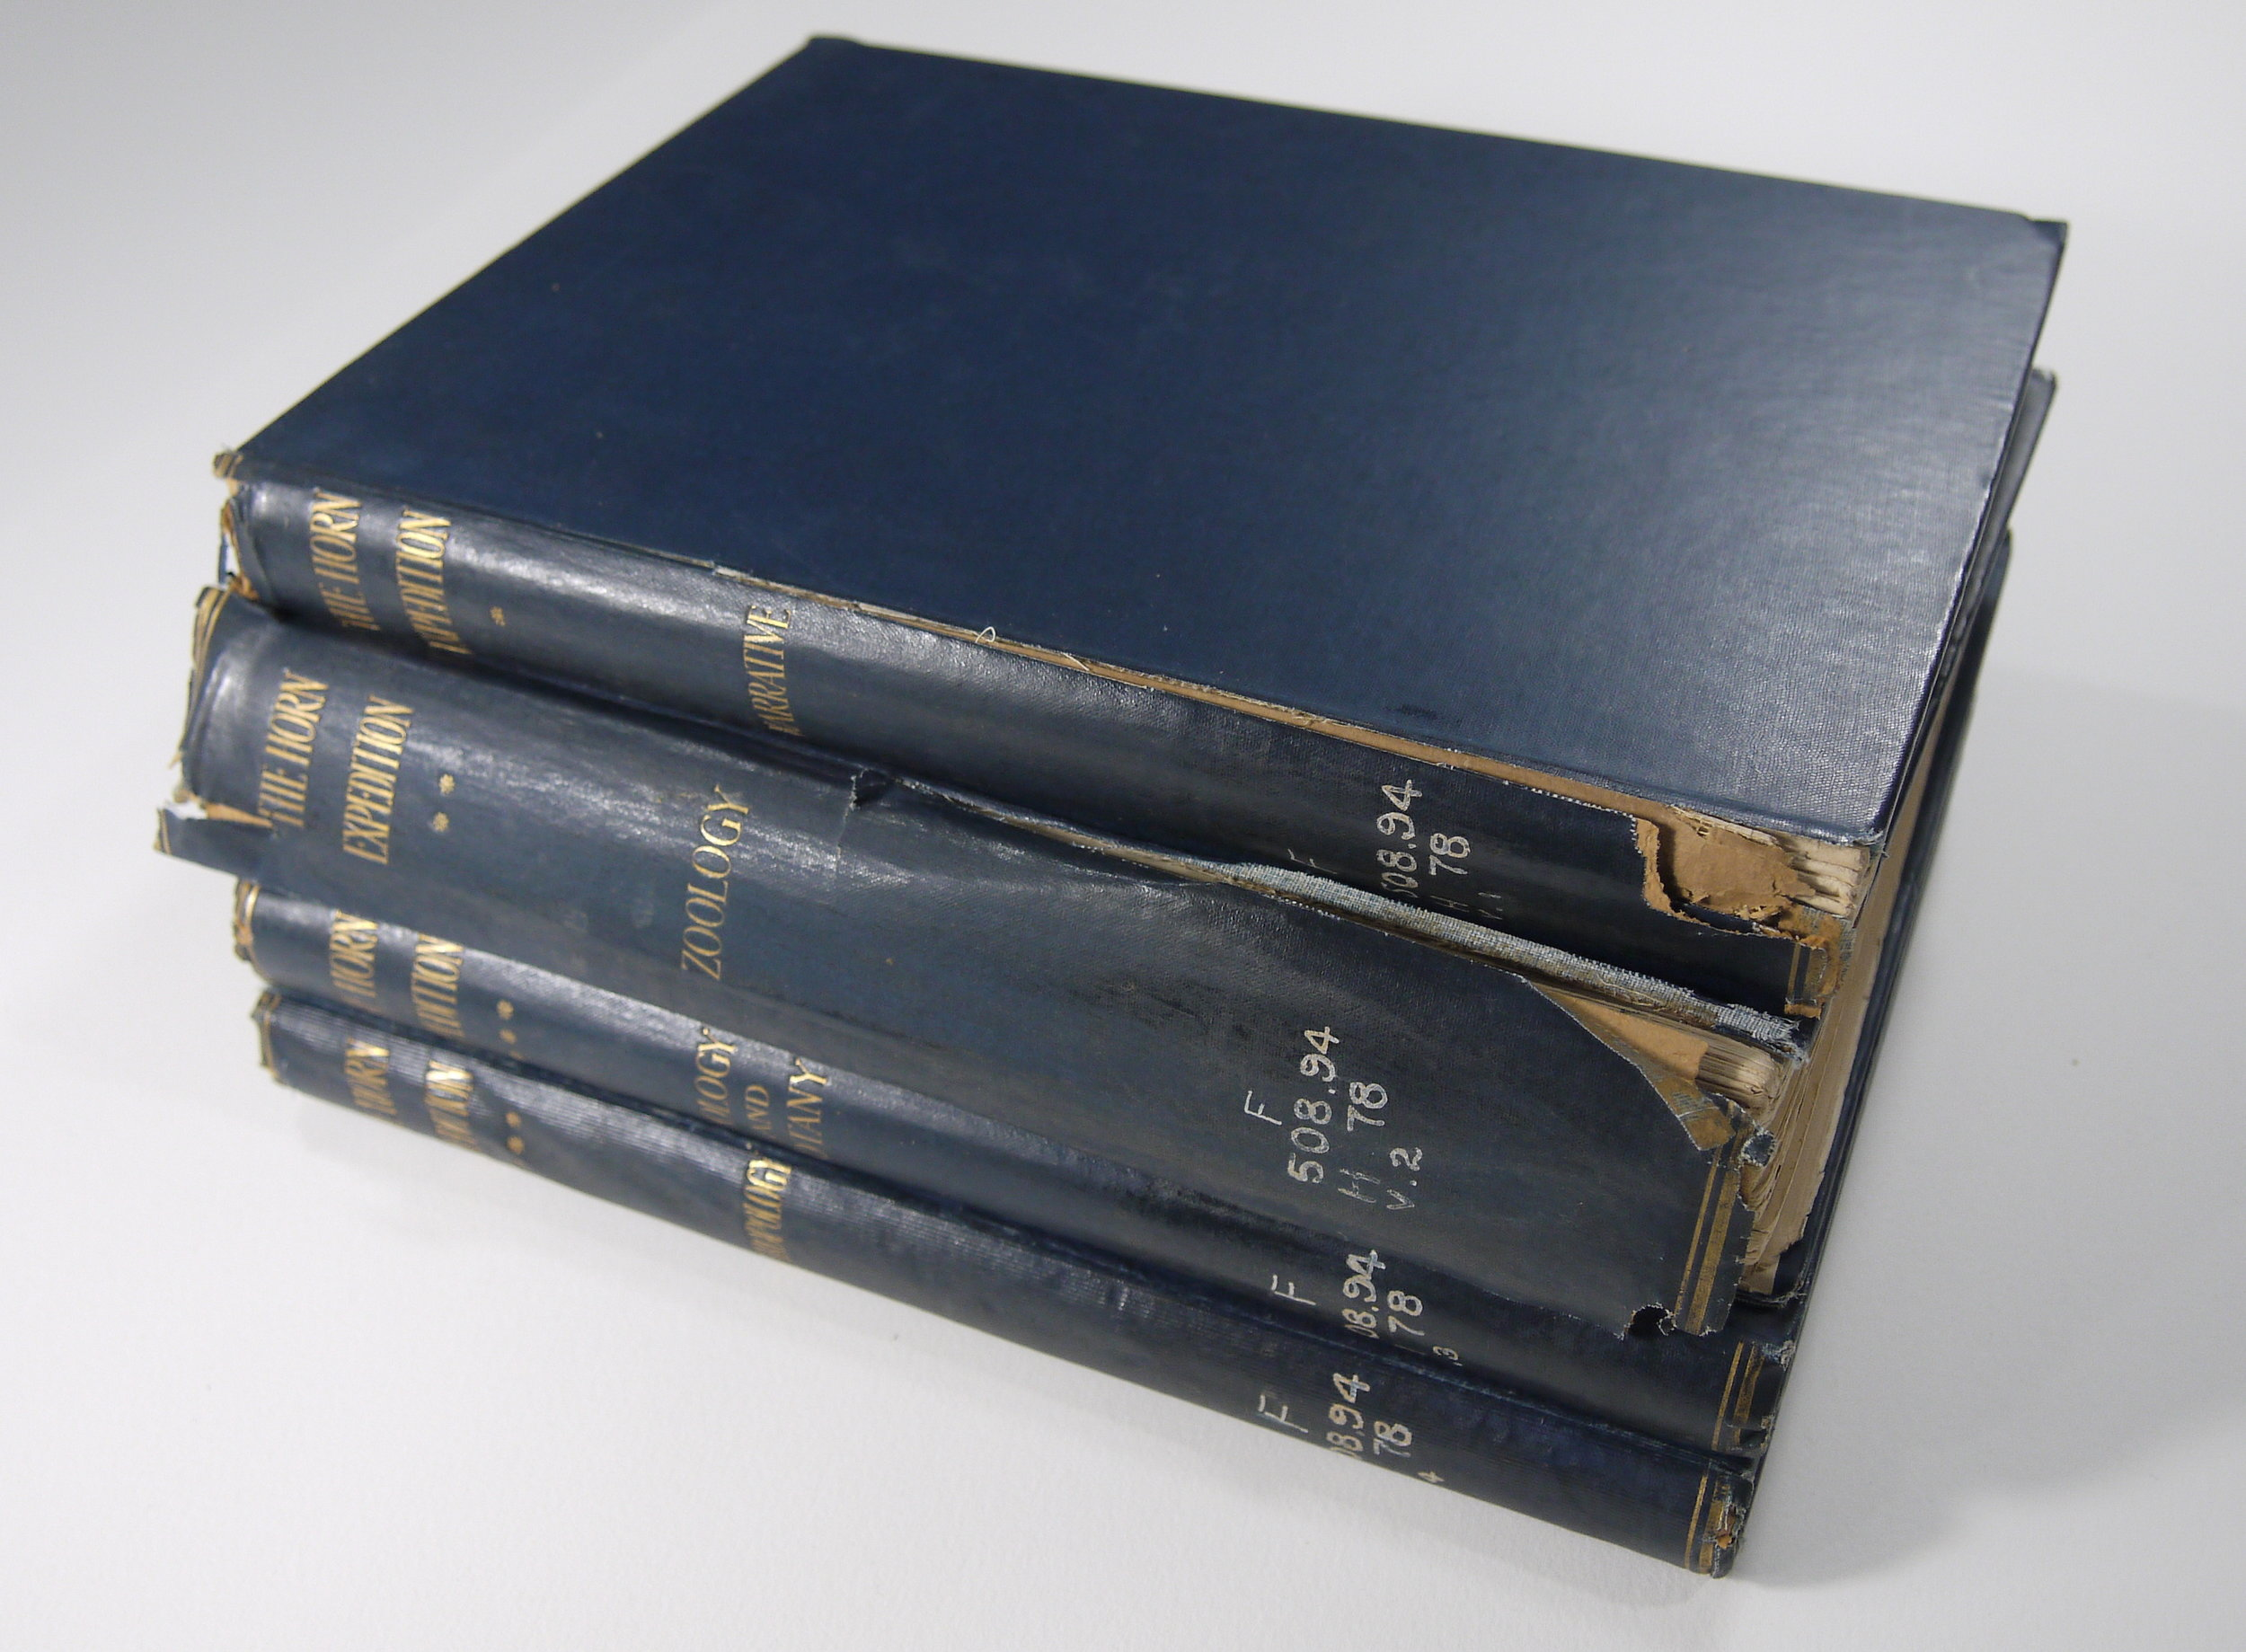 The board joints and endcaps of all 4 volumes were particularly damaged.